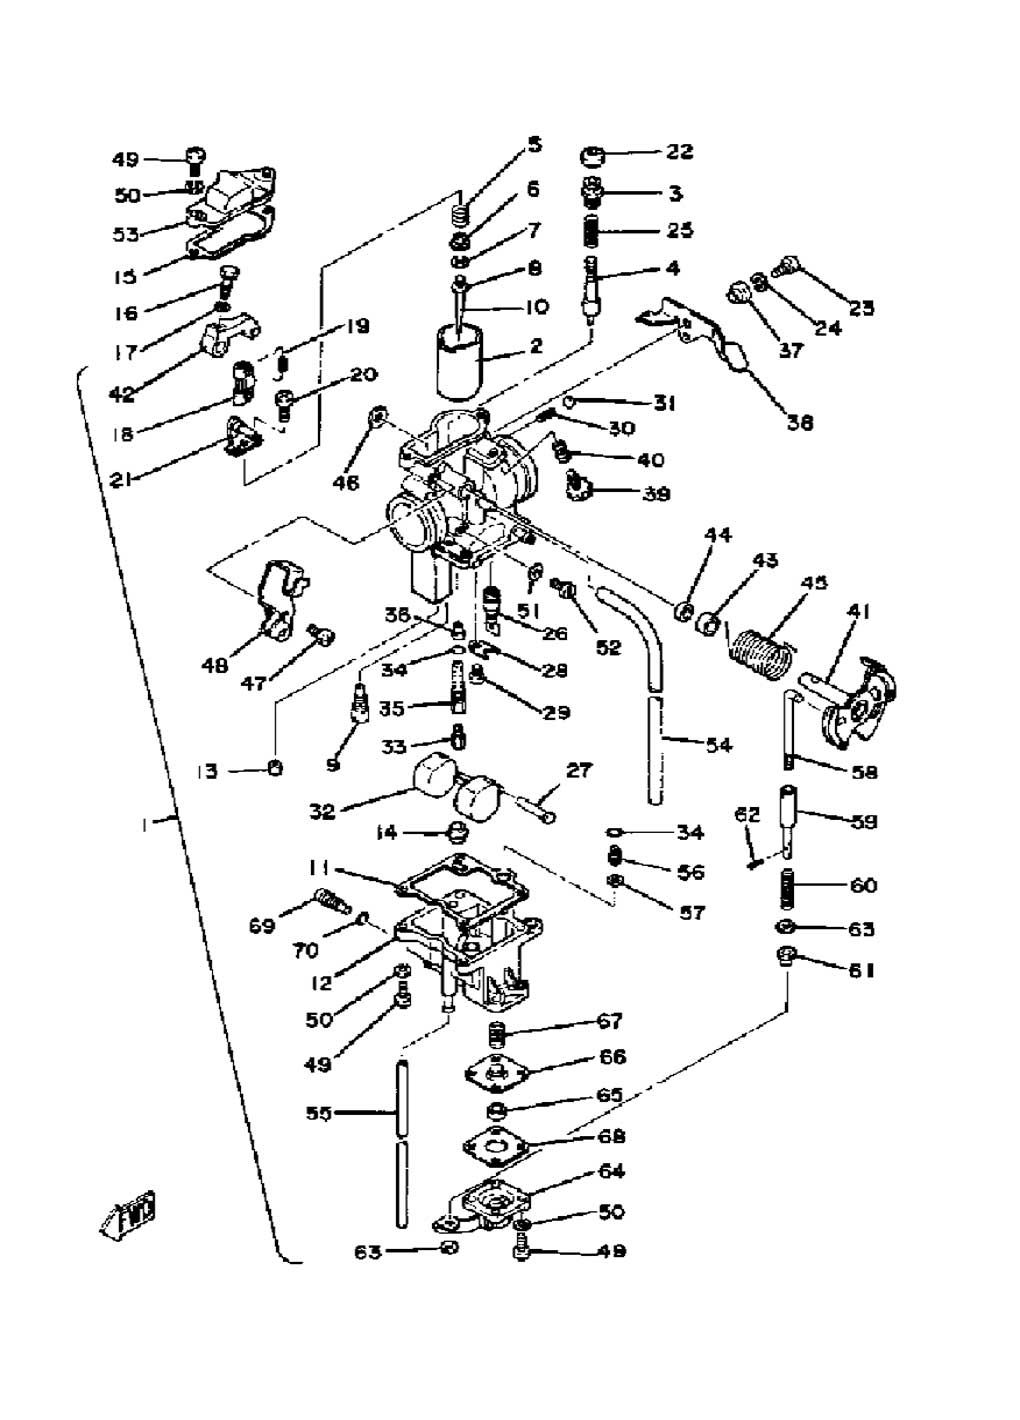 yamaha xt200 wiring diagram 1981 yamaha xt250 carburetor diagram yamaha old bikes list  1981 yamaha xt250 carburetor diagram